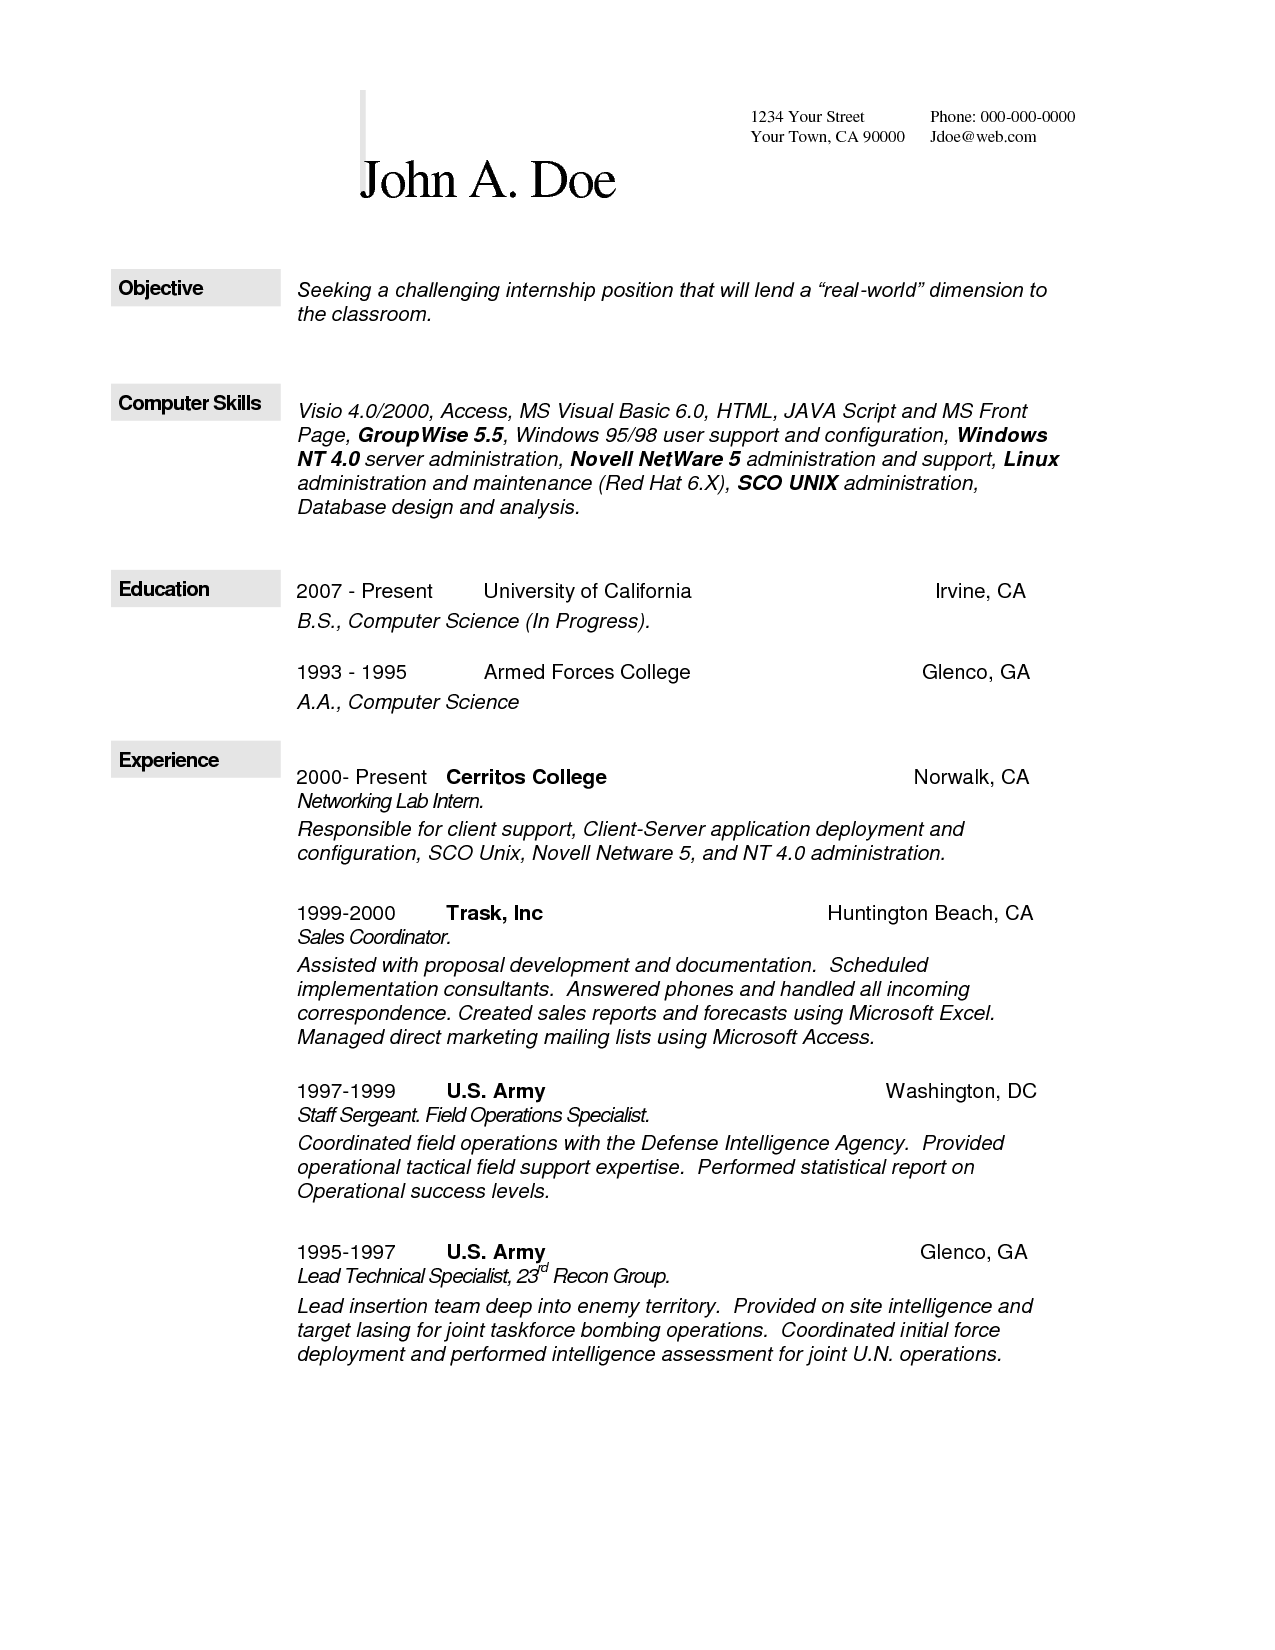 College Internship Resume Template Simple Self Defense Tip How To Stop An Attackerclick Here For